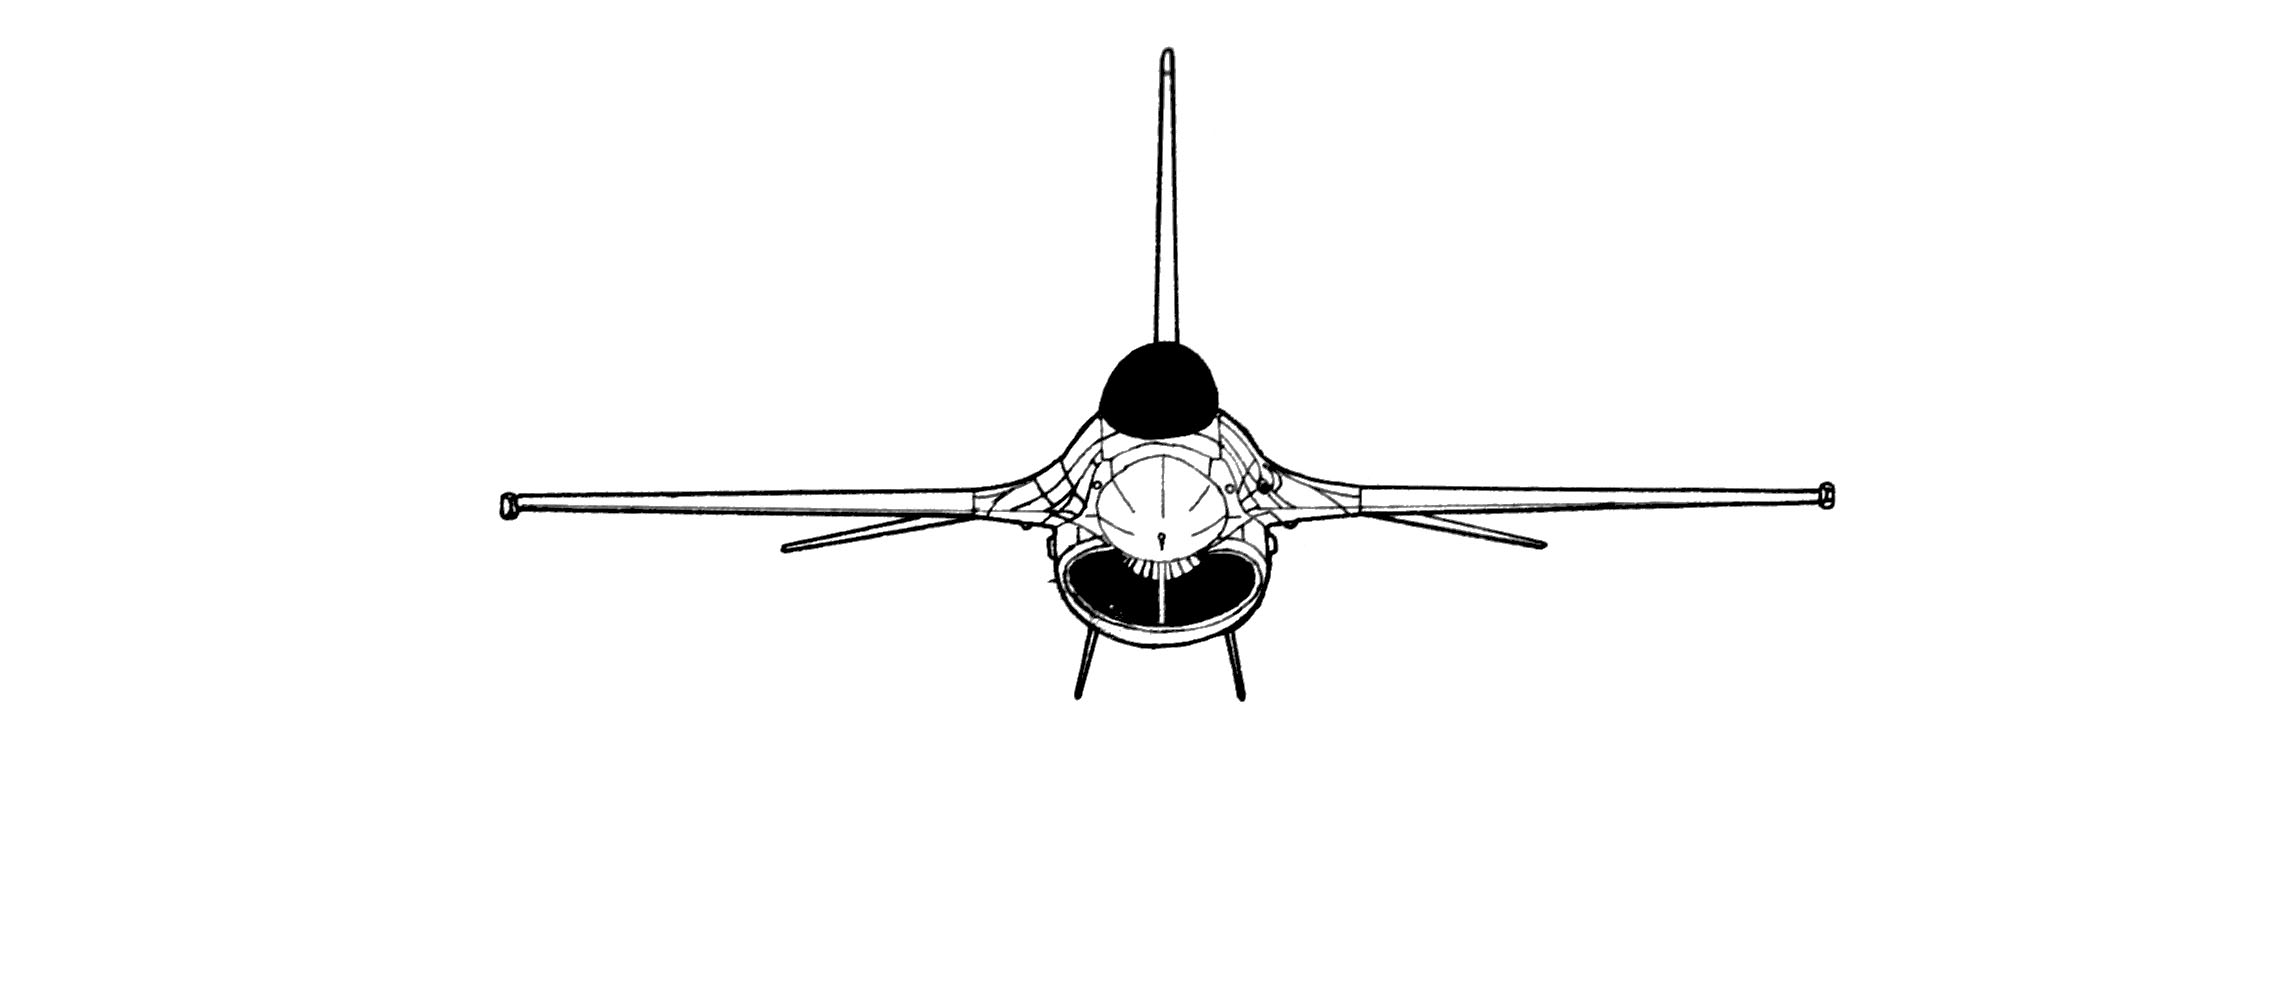 F-16 Fighting Falcon blueprint